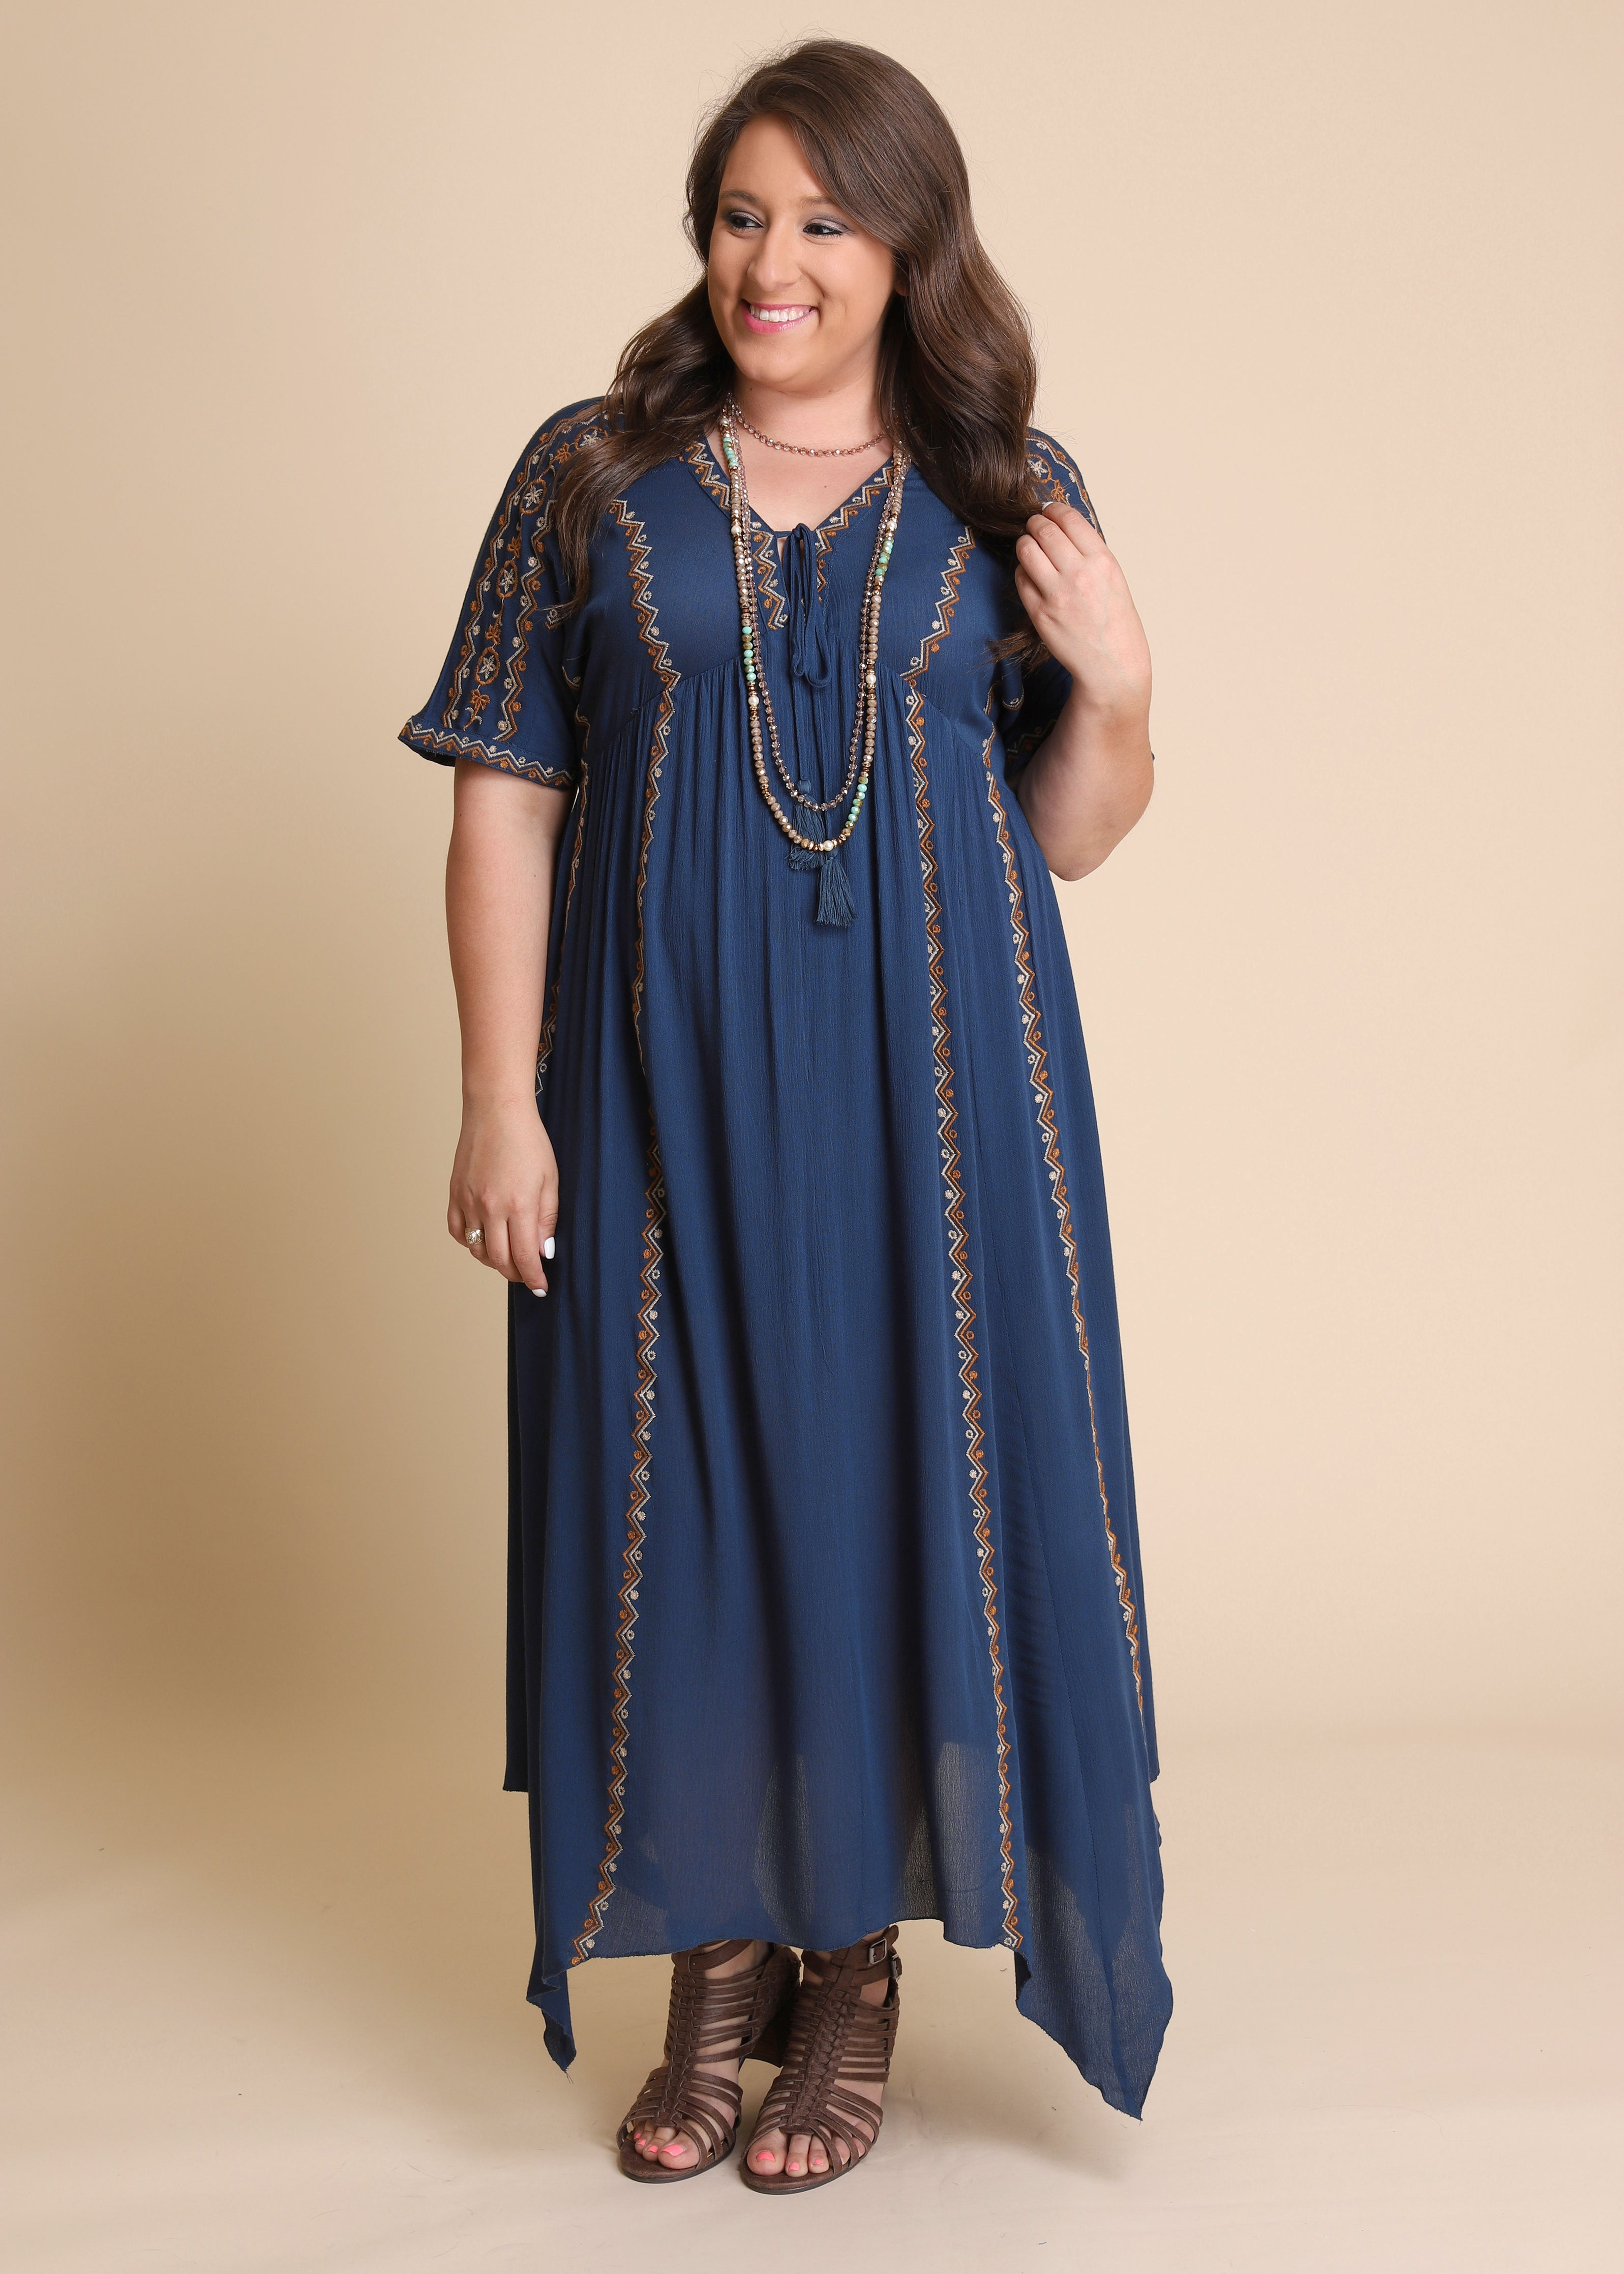 Dreamcatcher Embroidered Maxi - DK TEAL